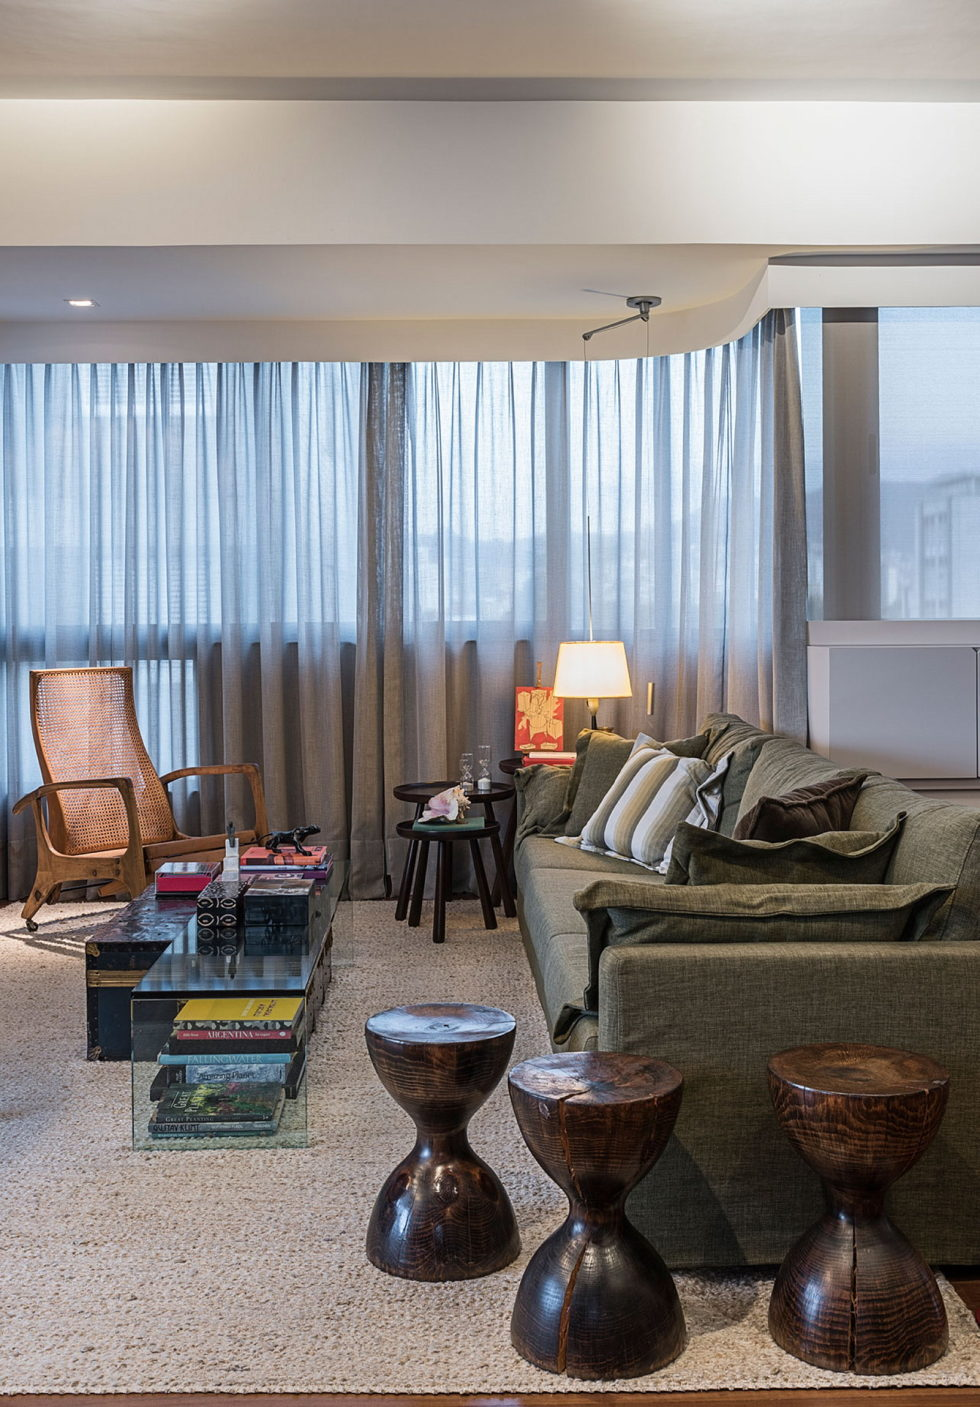 Top House Penthouse Upon The Project Of Celeno Ivanovo In Brazil 3